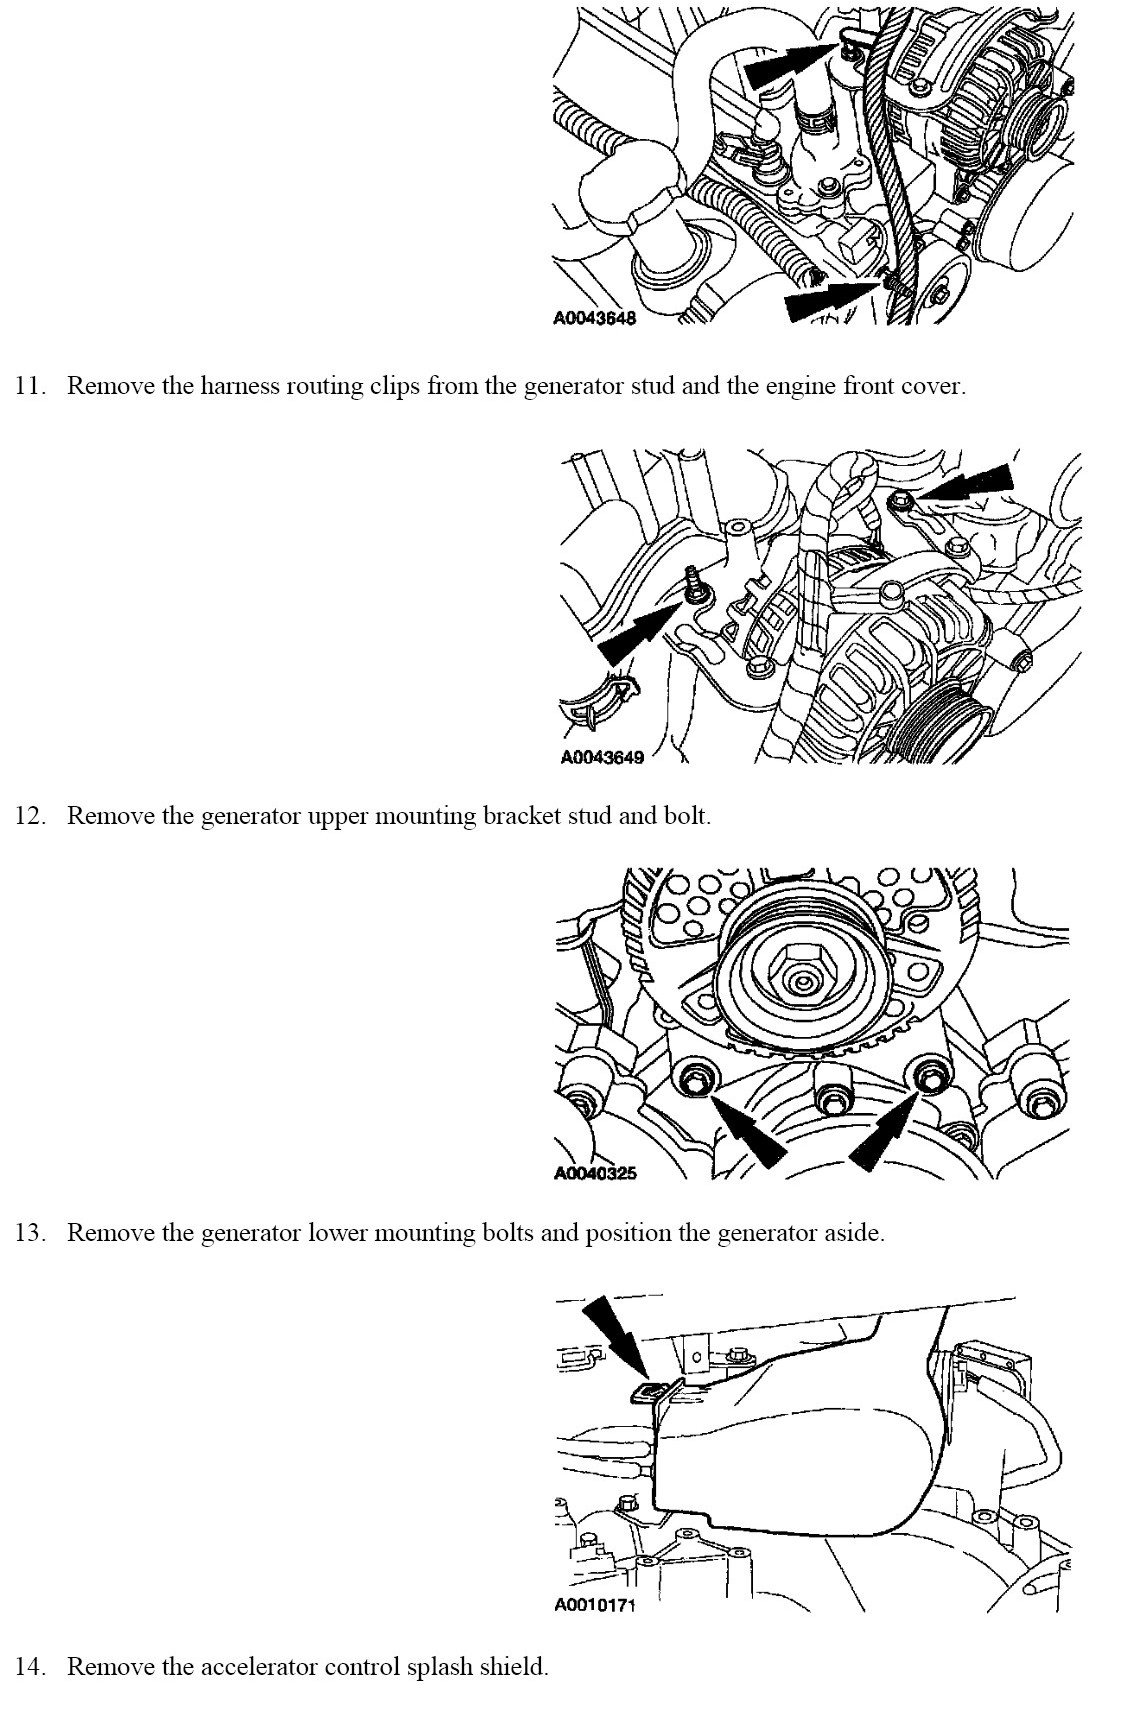 Ford 5.4 Engine Problems >> Torque specs for intake manifold on a 2002 F250 5.4L 2WD four